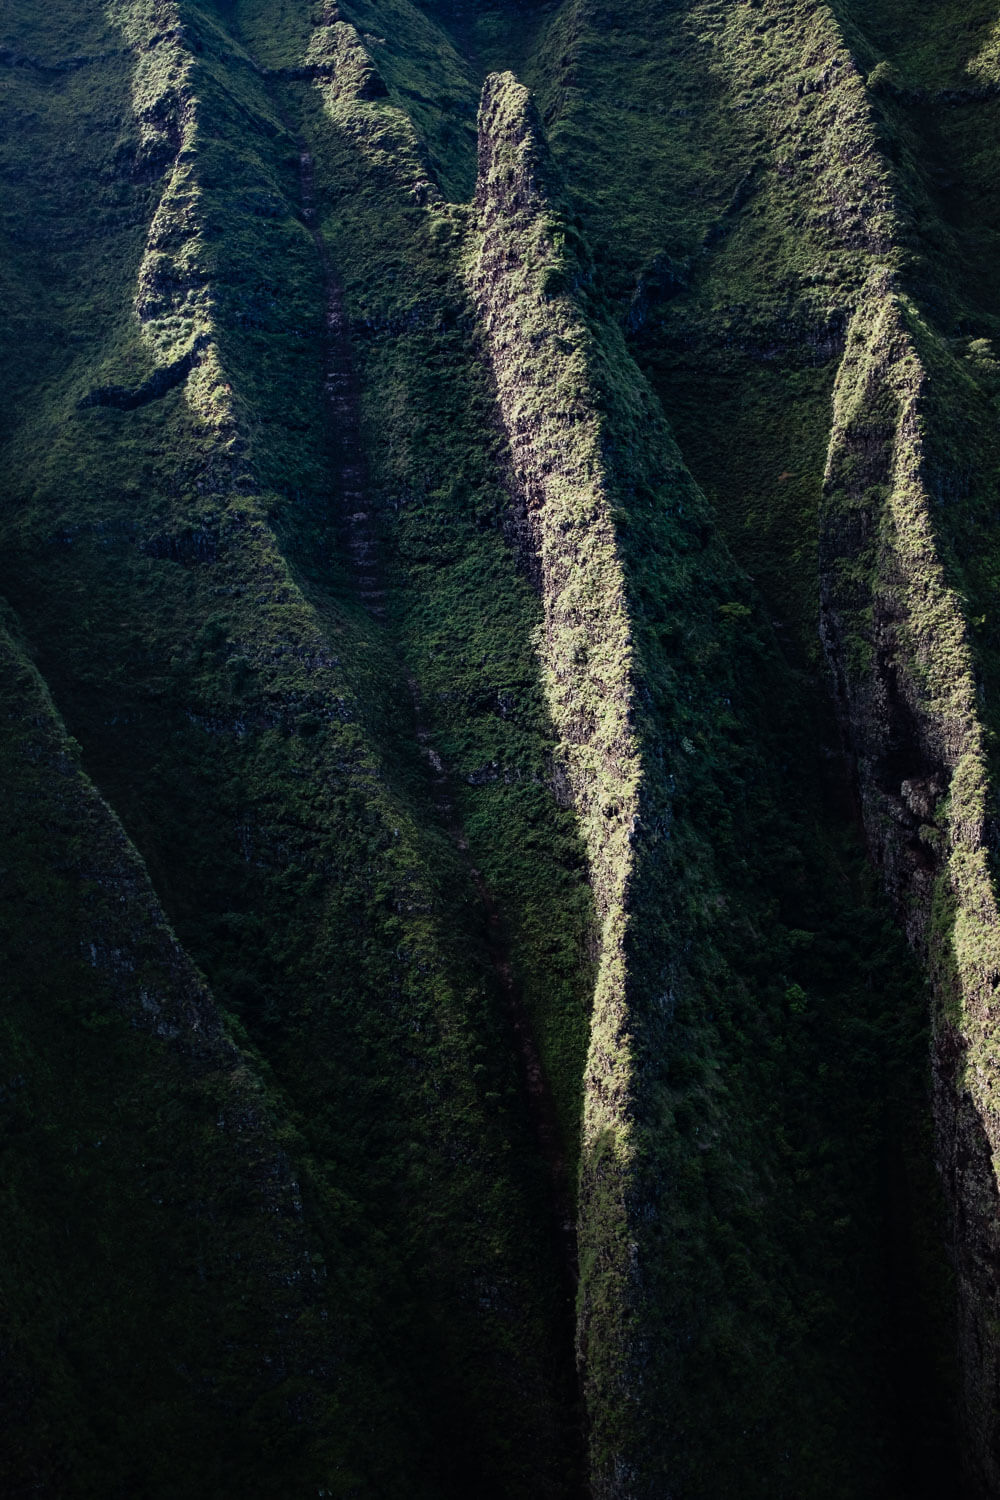 """Close up of the ridges. Travel photography and guide by © Natasha Lequepeys for """"And Then I Met Yoko"""". #hawaii #travelguide #photoblog #travelblog #landscapephotography #fujifilm"""